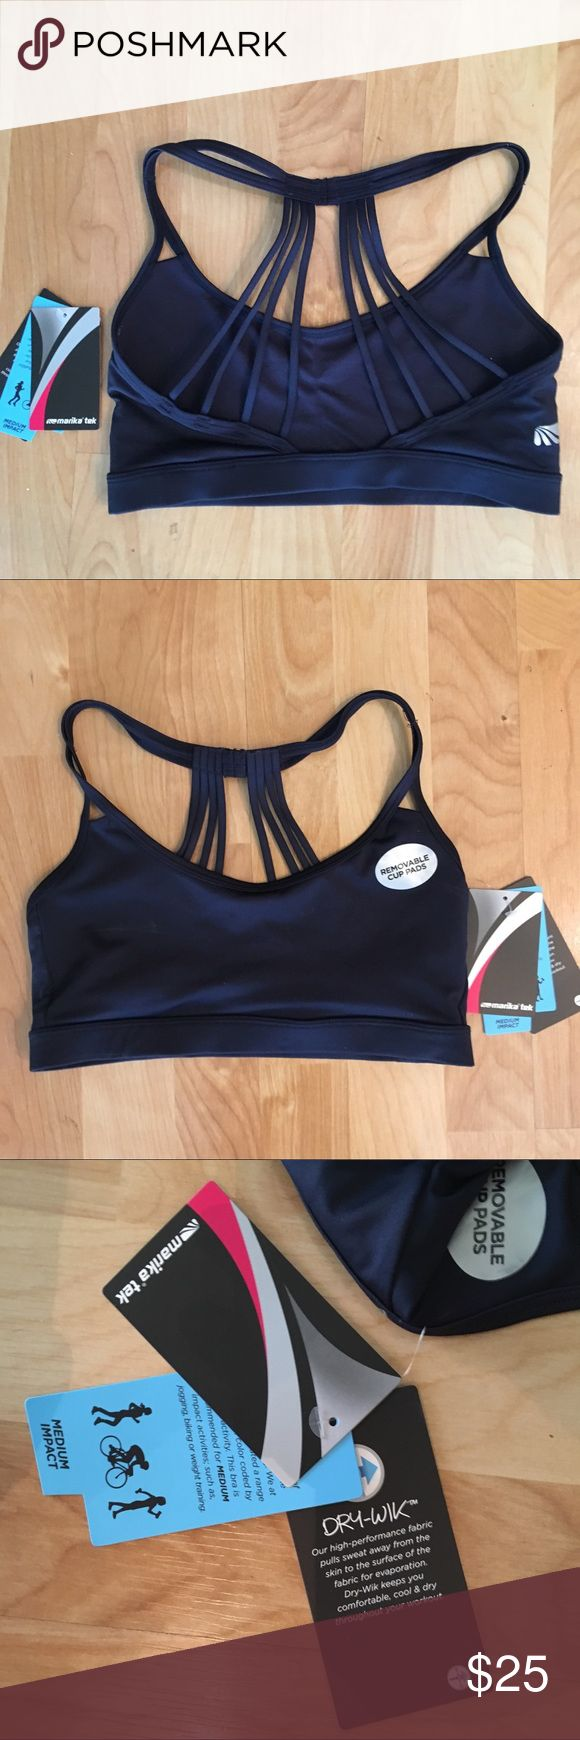 """MARIKA """"Amy"""" navy blue strappy yoga / sports bra """"Amy"""" strappy sports bra by Marika, brand new with tags. Great performance and style, comfortably light fabric is great for keeping you cool during your workout! Stock photos shown only for style, color of top is dark, navy blue. Marika Tops"""